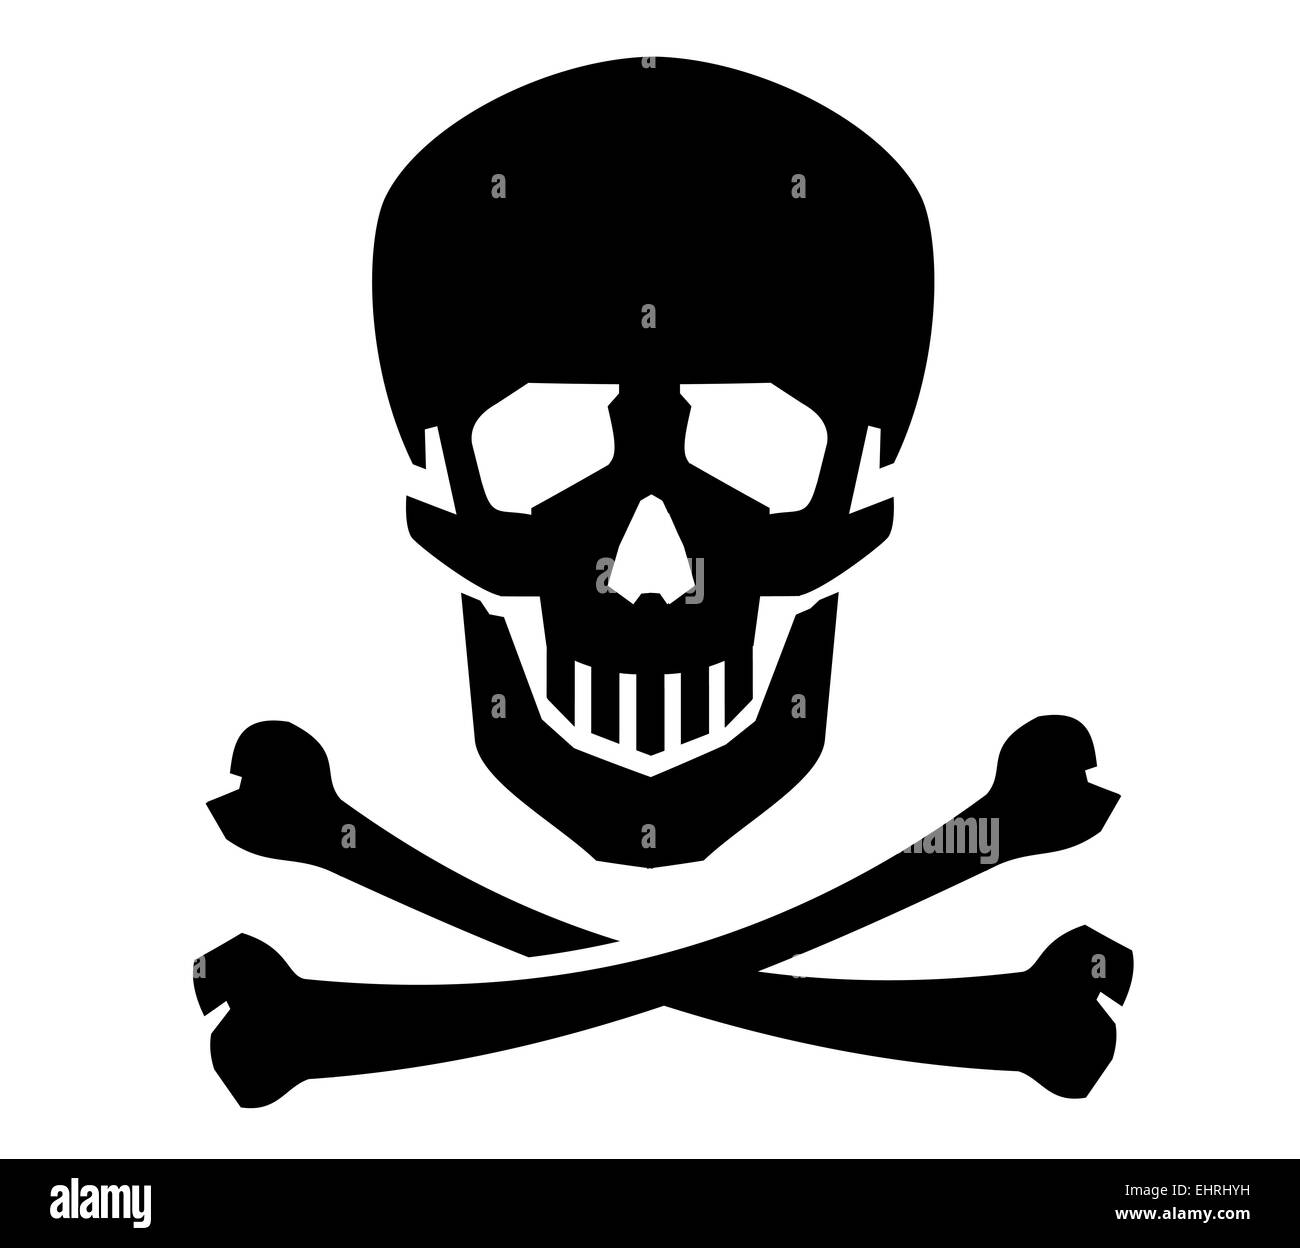 Jolly Roger vector logo design template. human skull or dead icon. - Stock Image